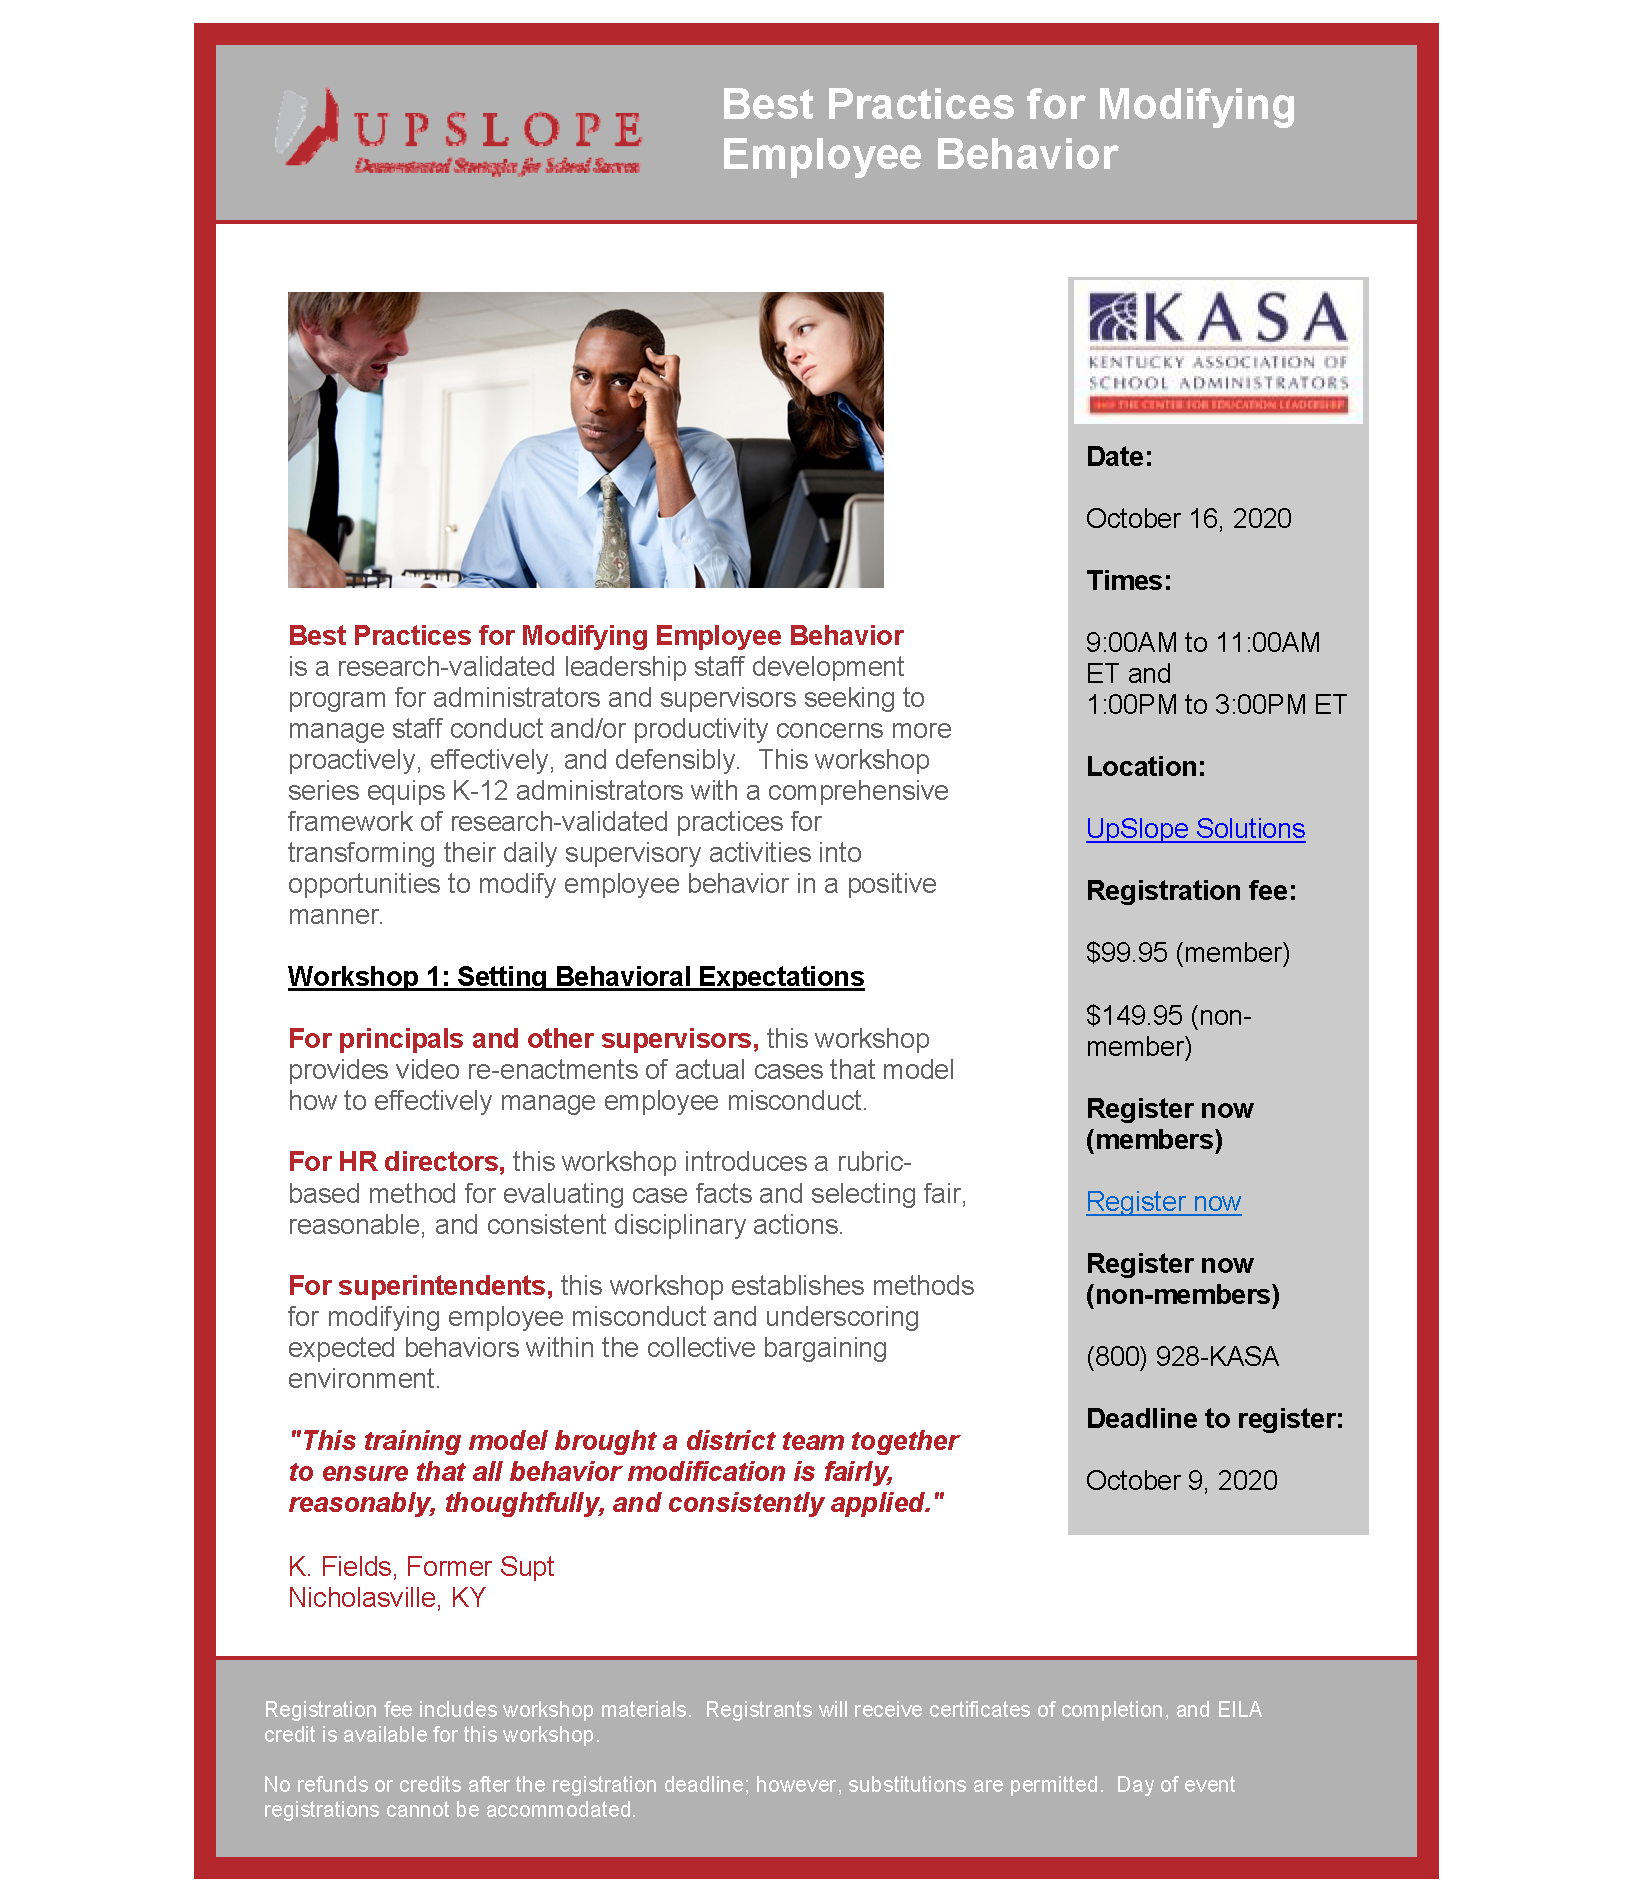 Best Practices for Modifying Employee Behavior @ KASA